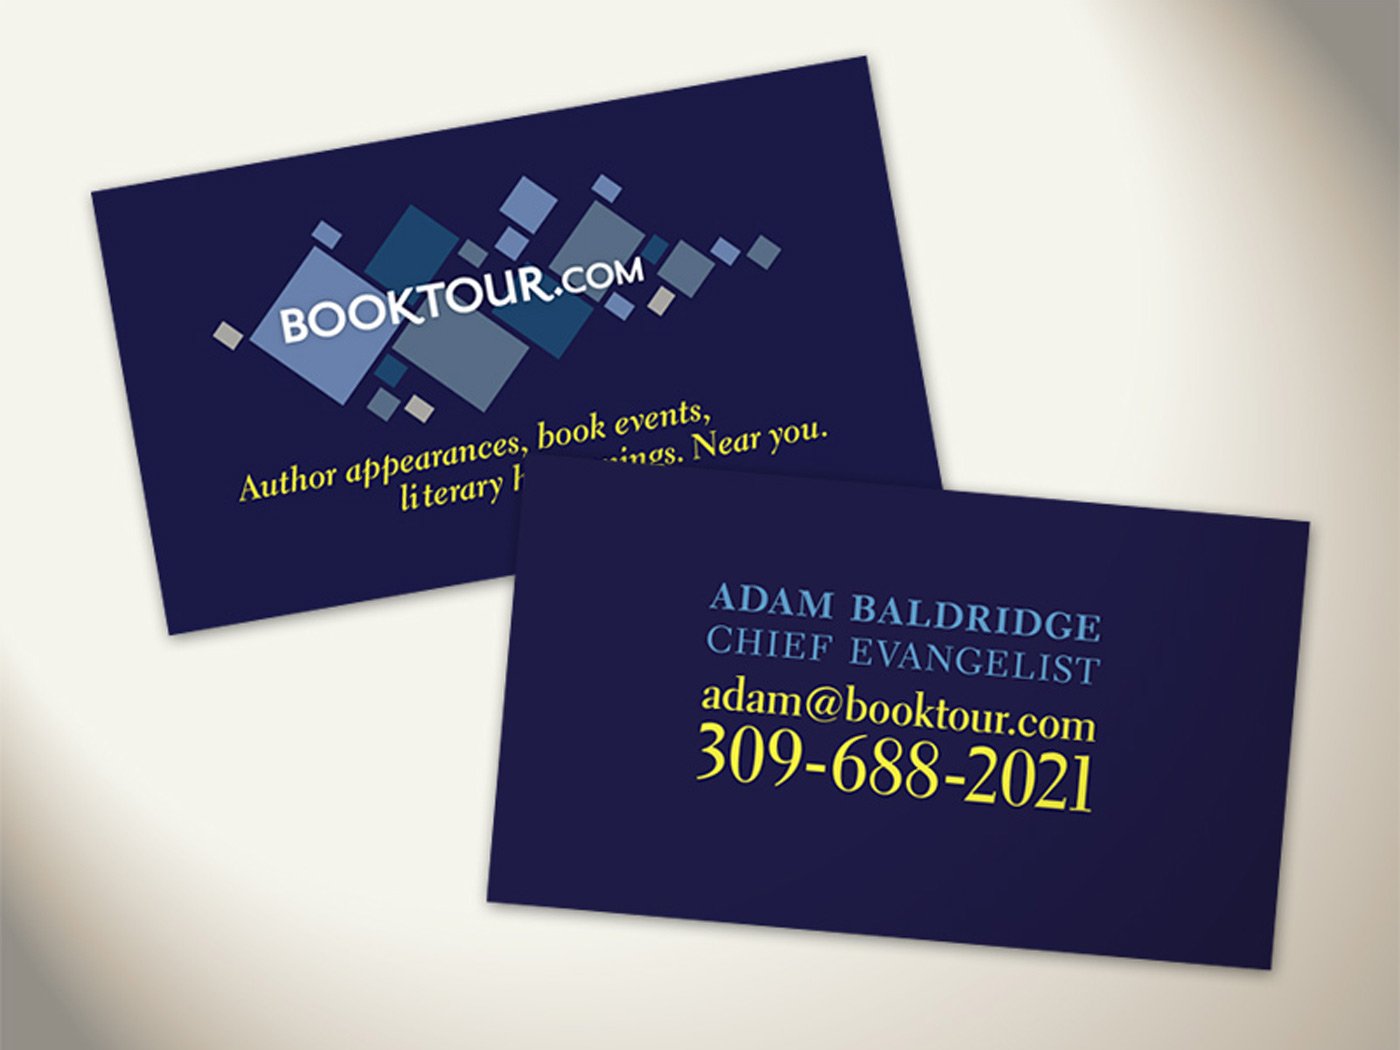 Booktour.com business card